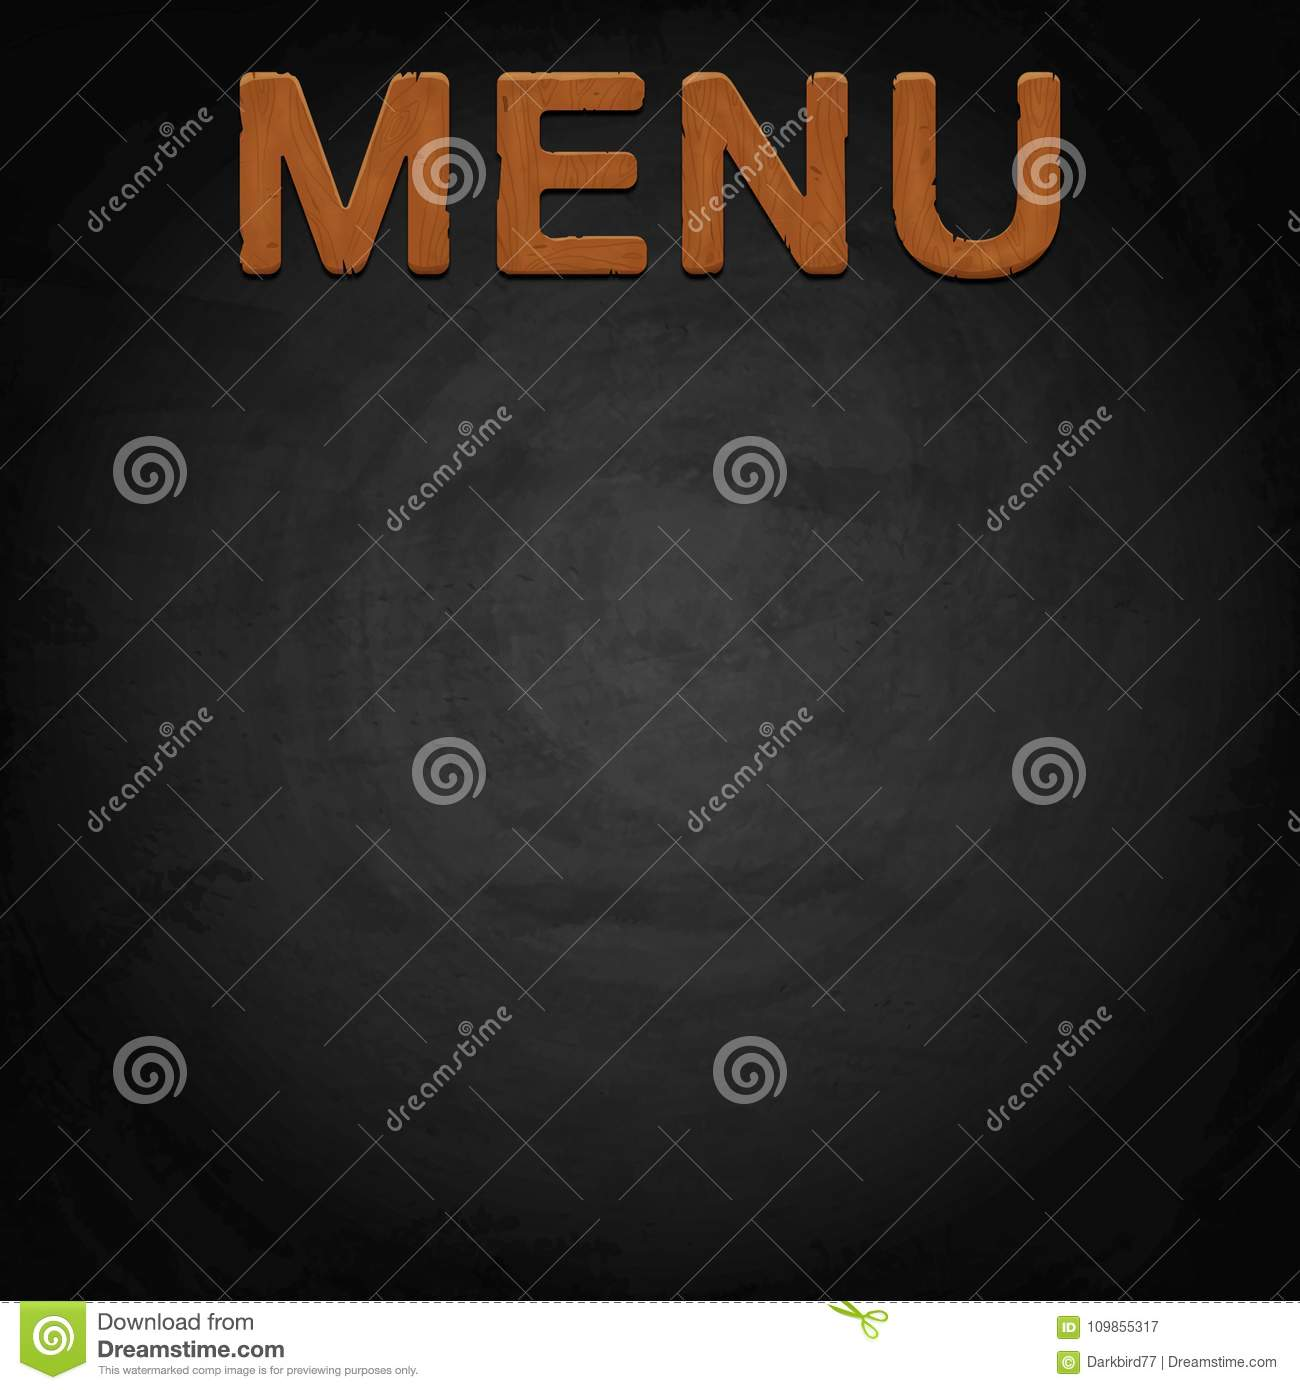 menu of restaurant made of wood on chalkboard background stock